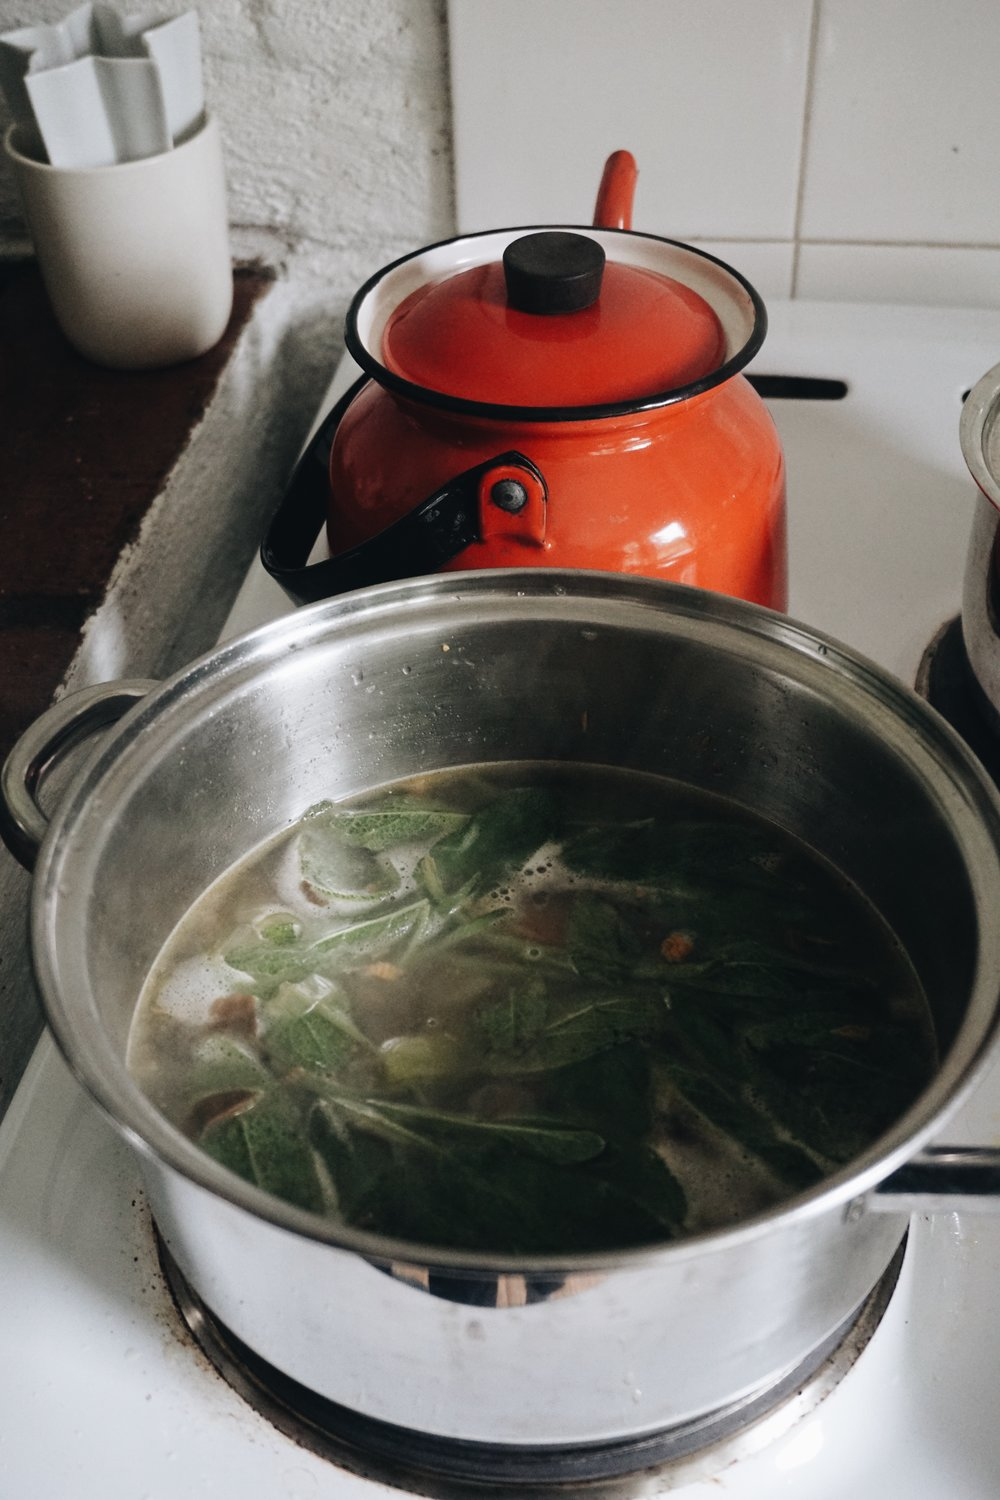 Cooking the broth, a few hours before making the risotto.